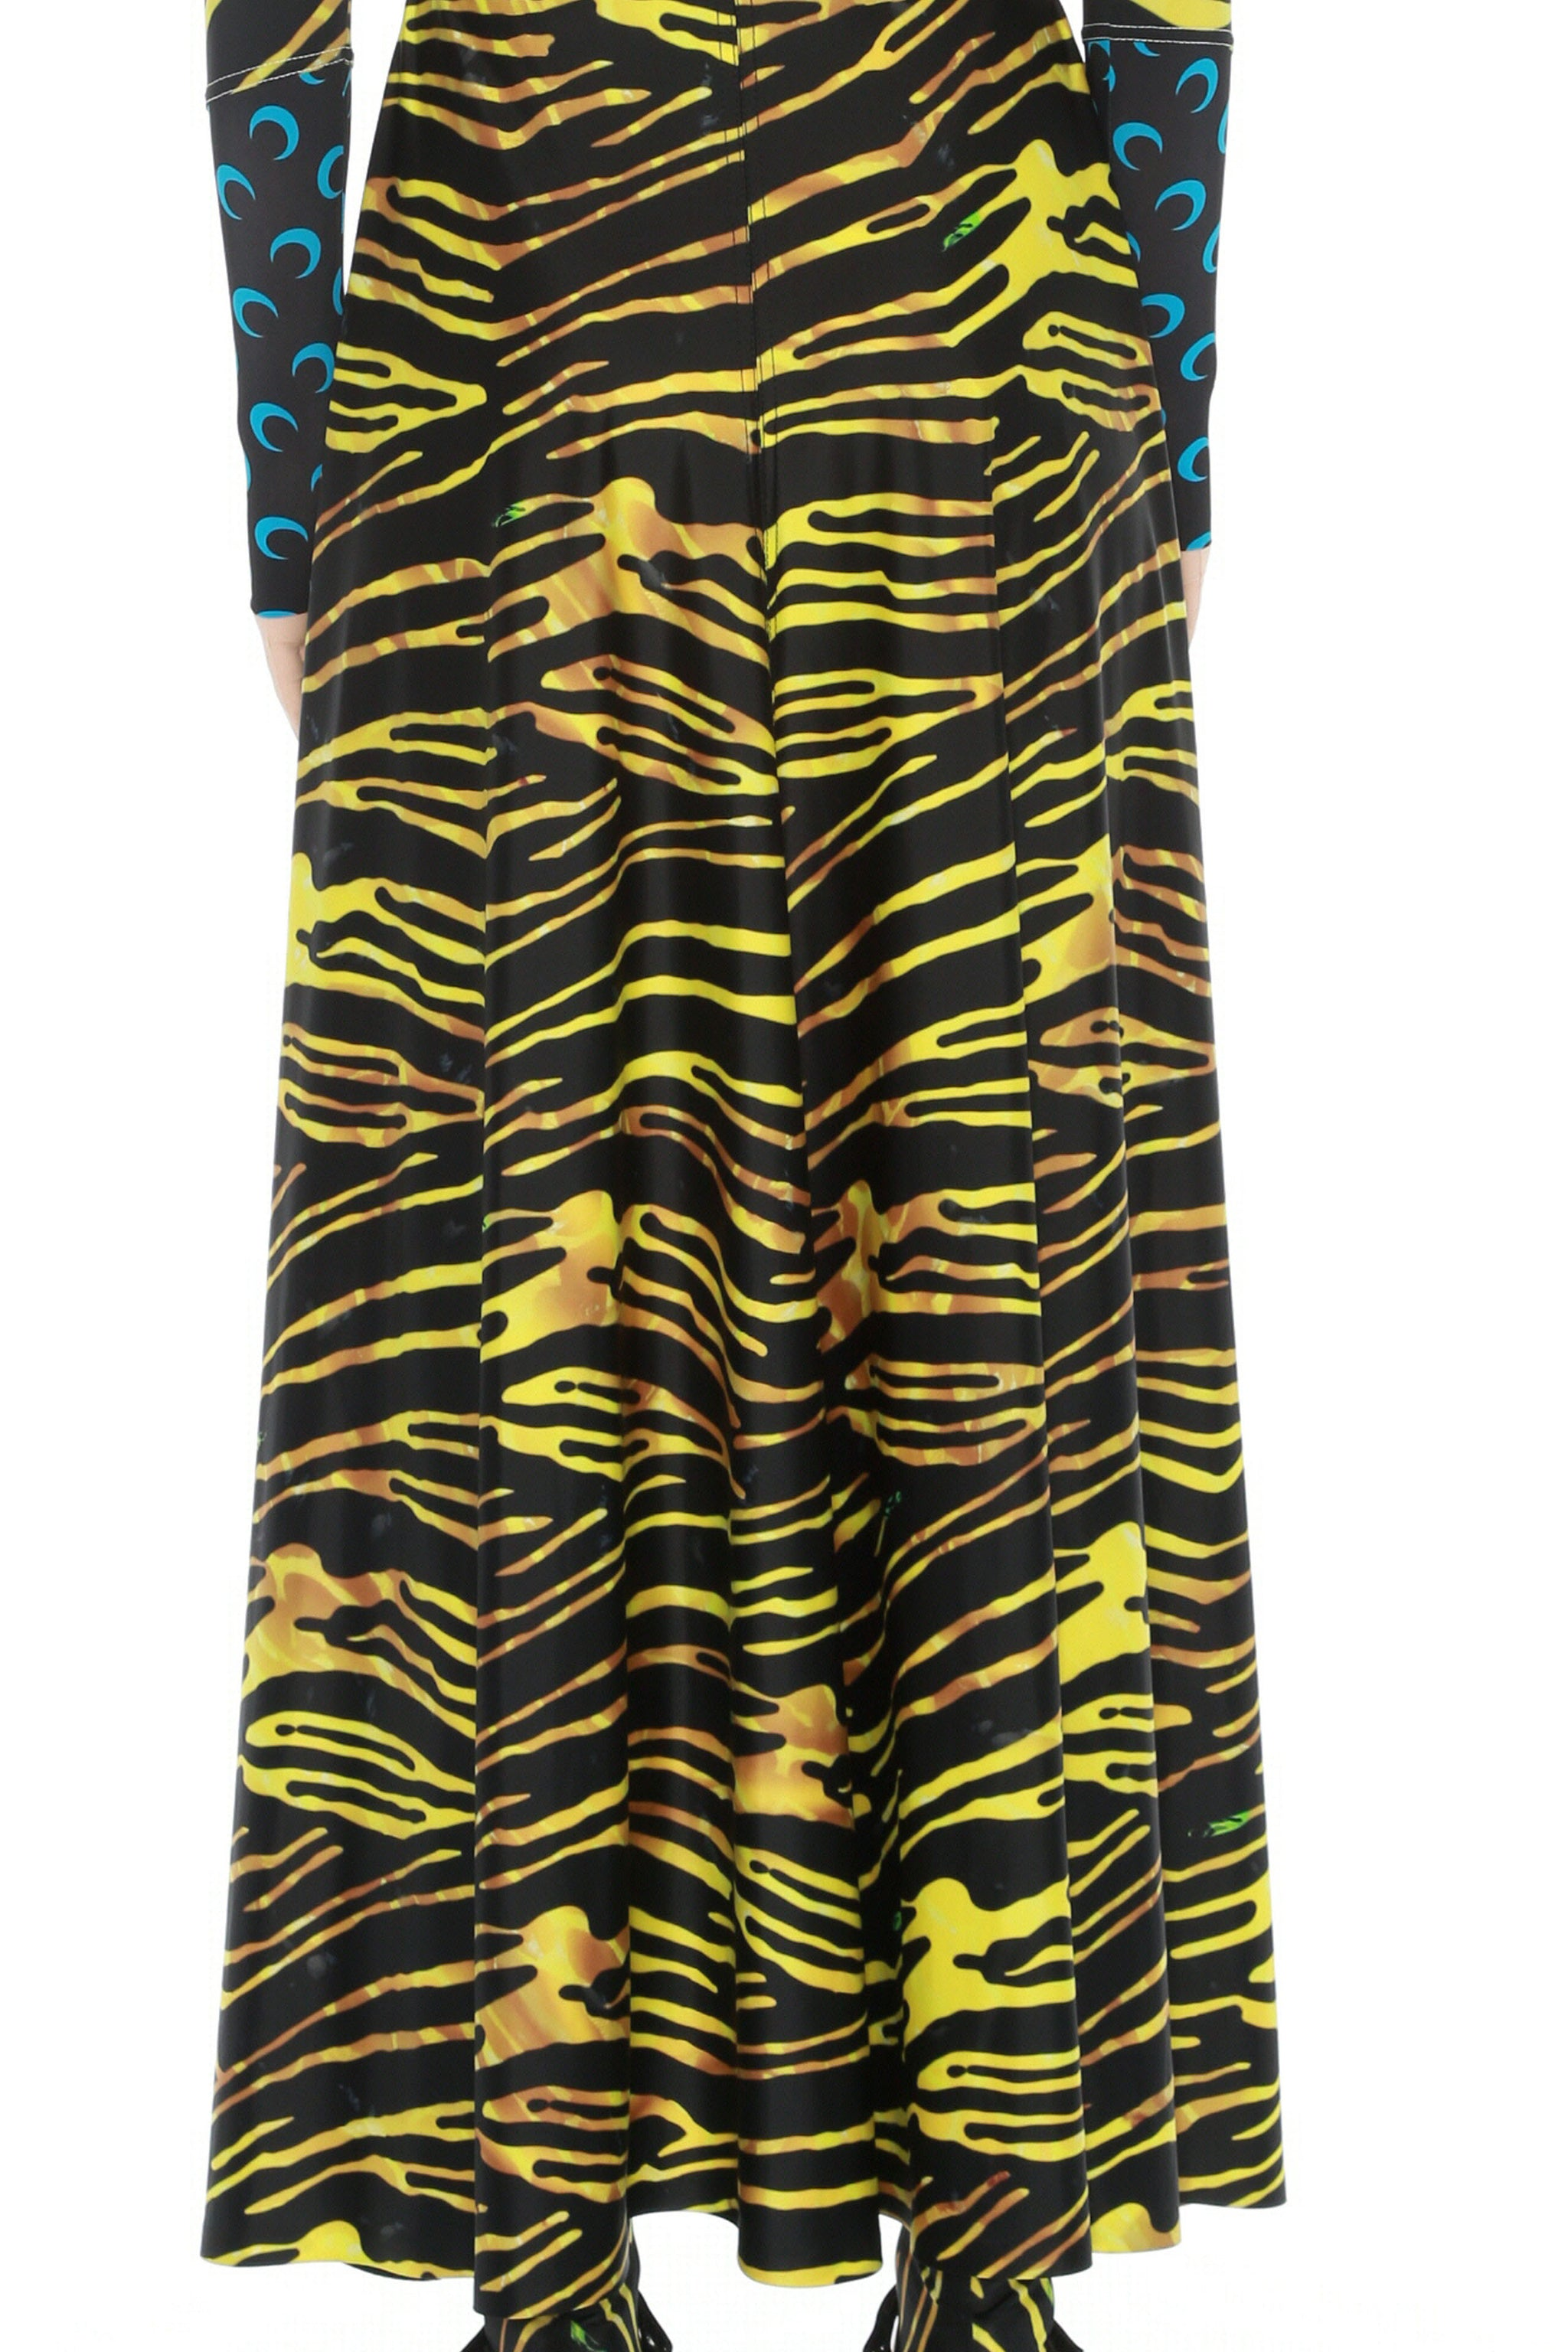 Animalier Siren Dress